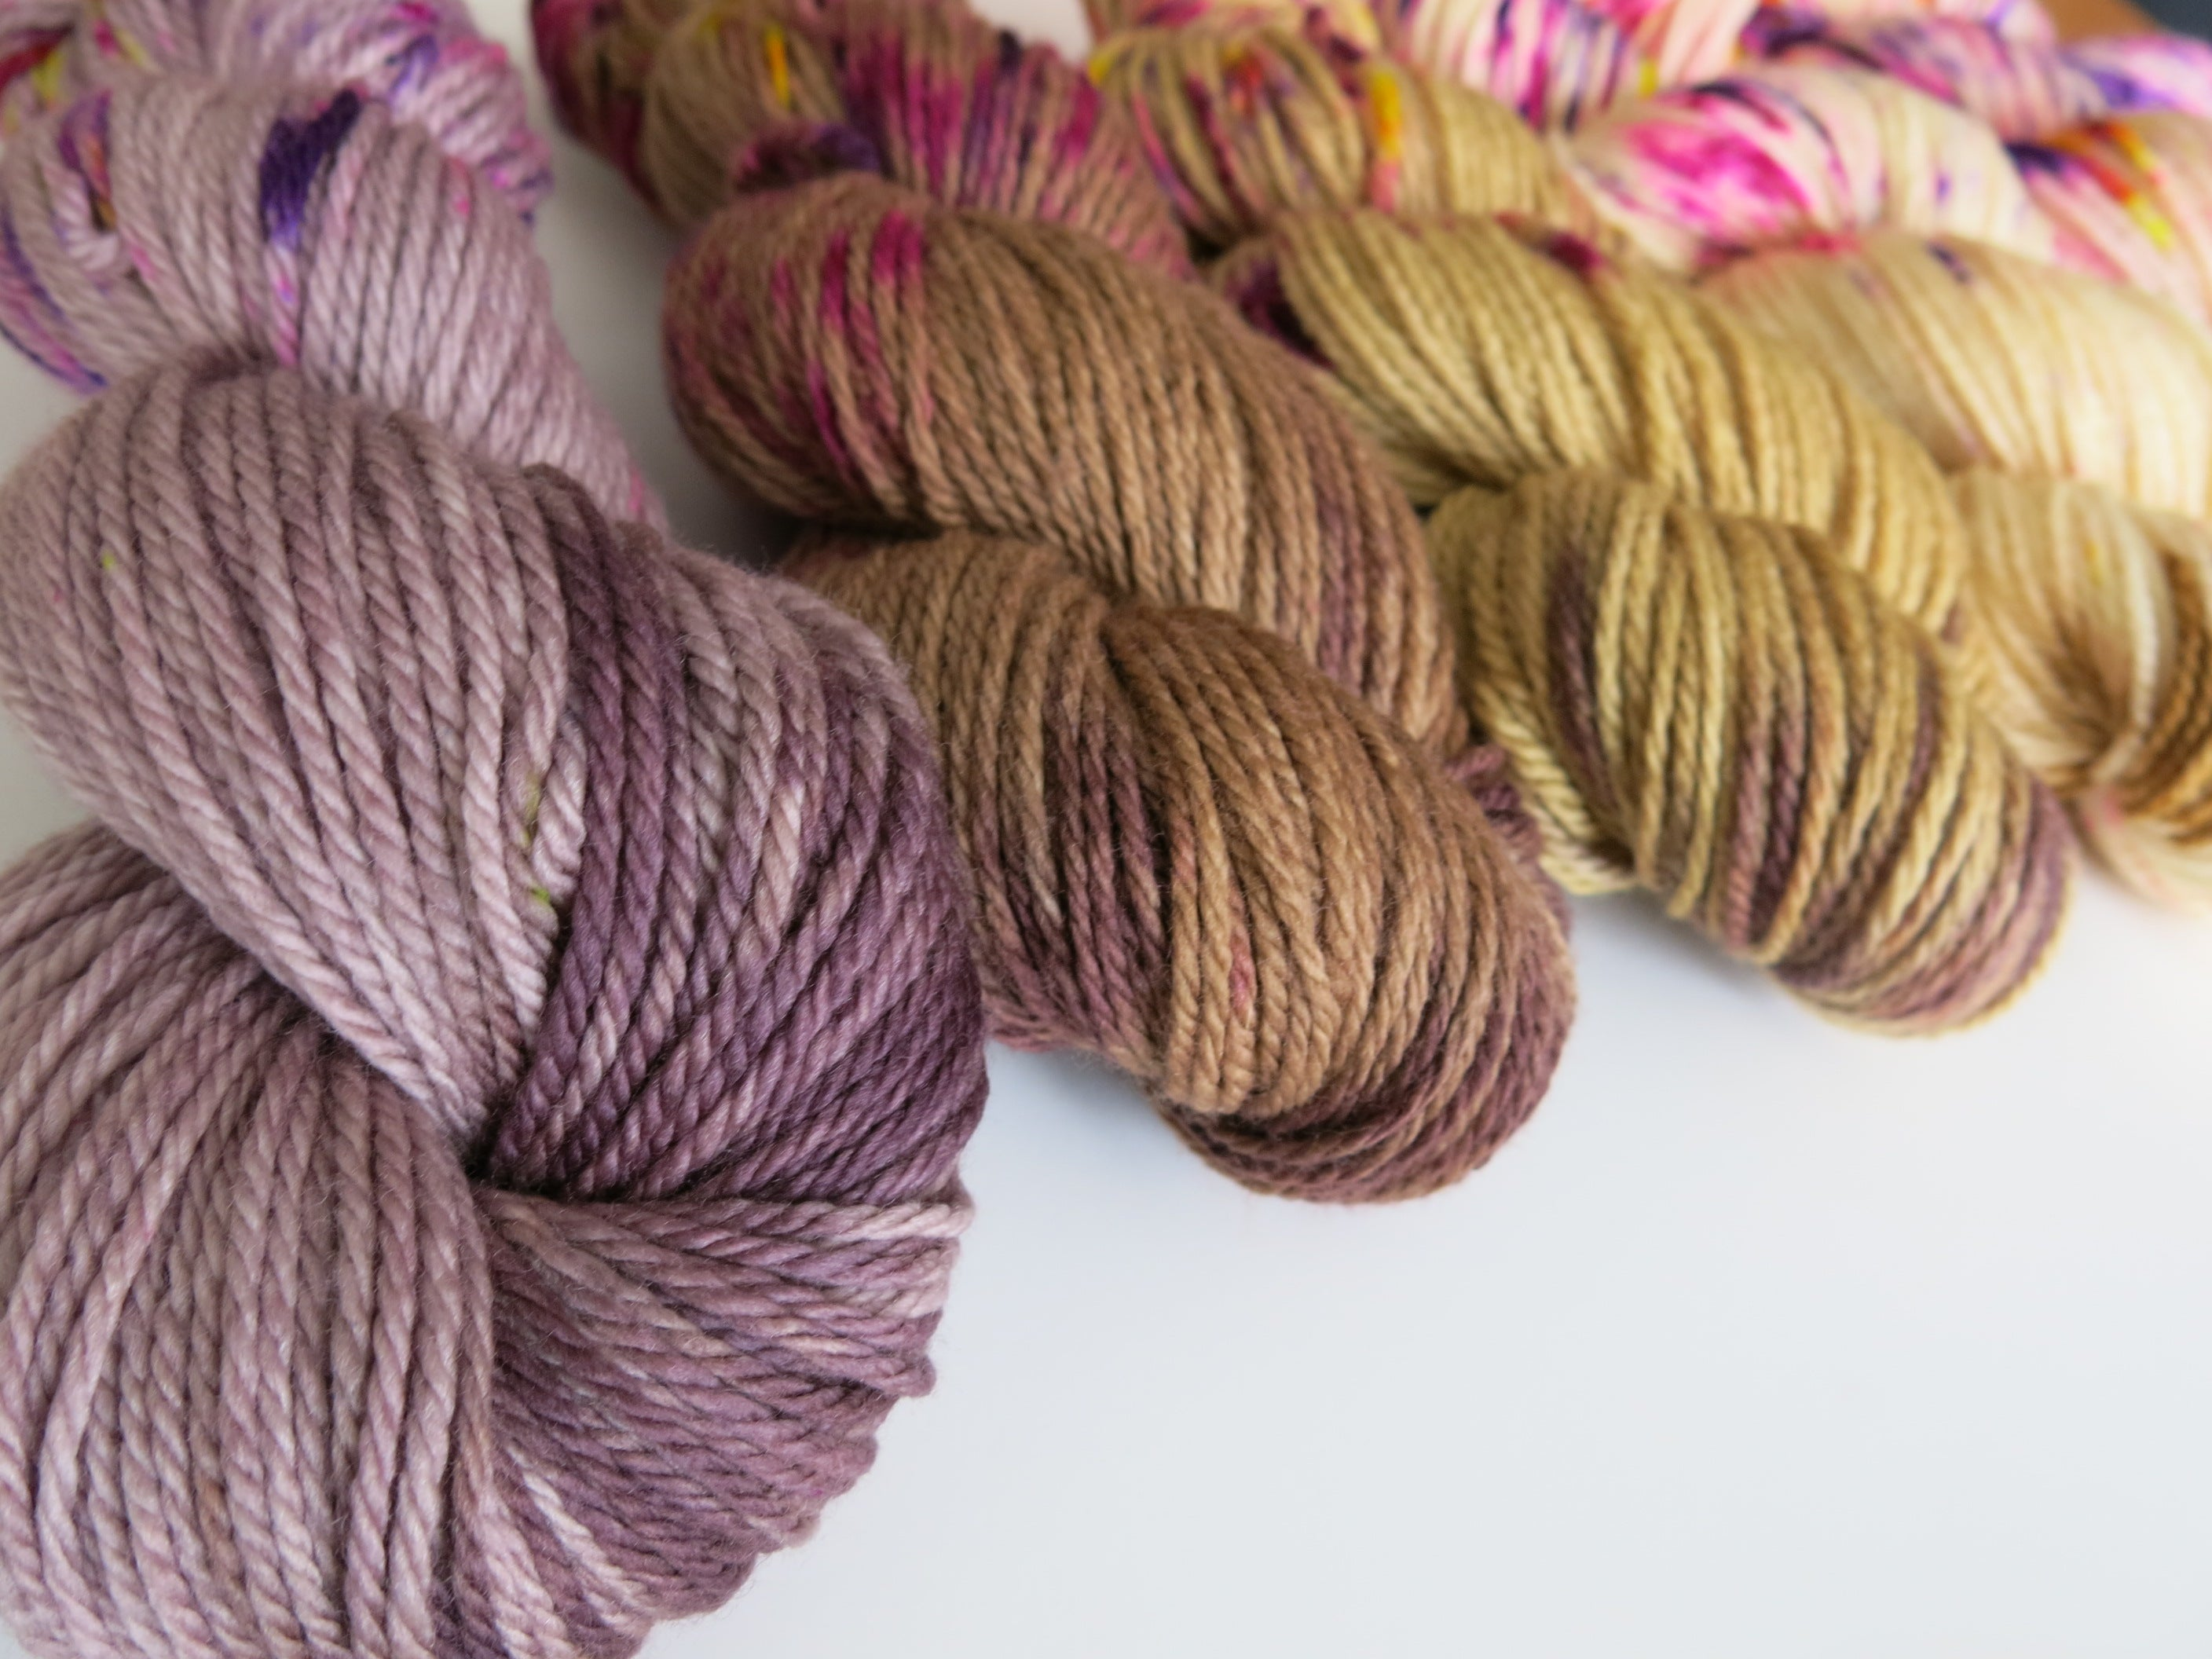 hand dyed and speckled yarn for weaving, knitting and crochet